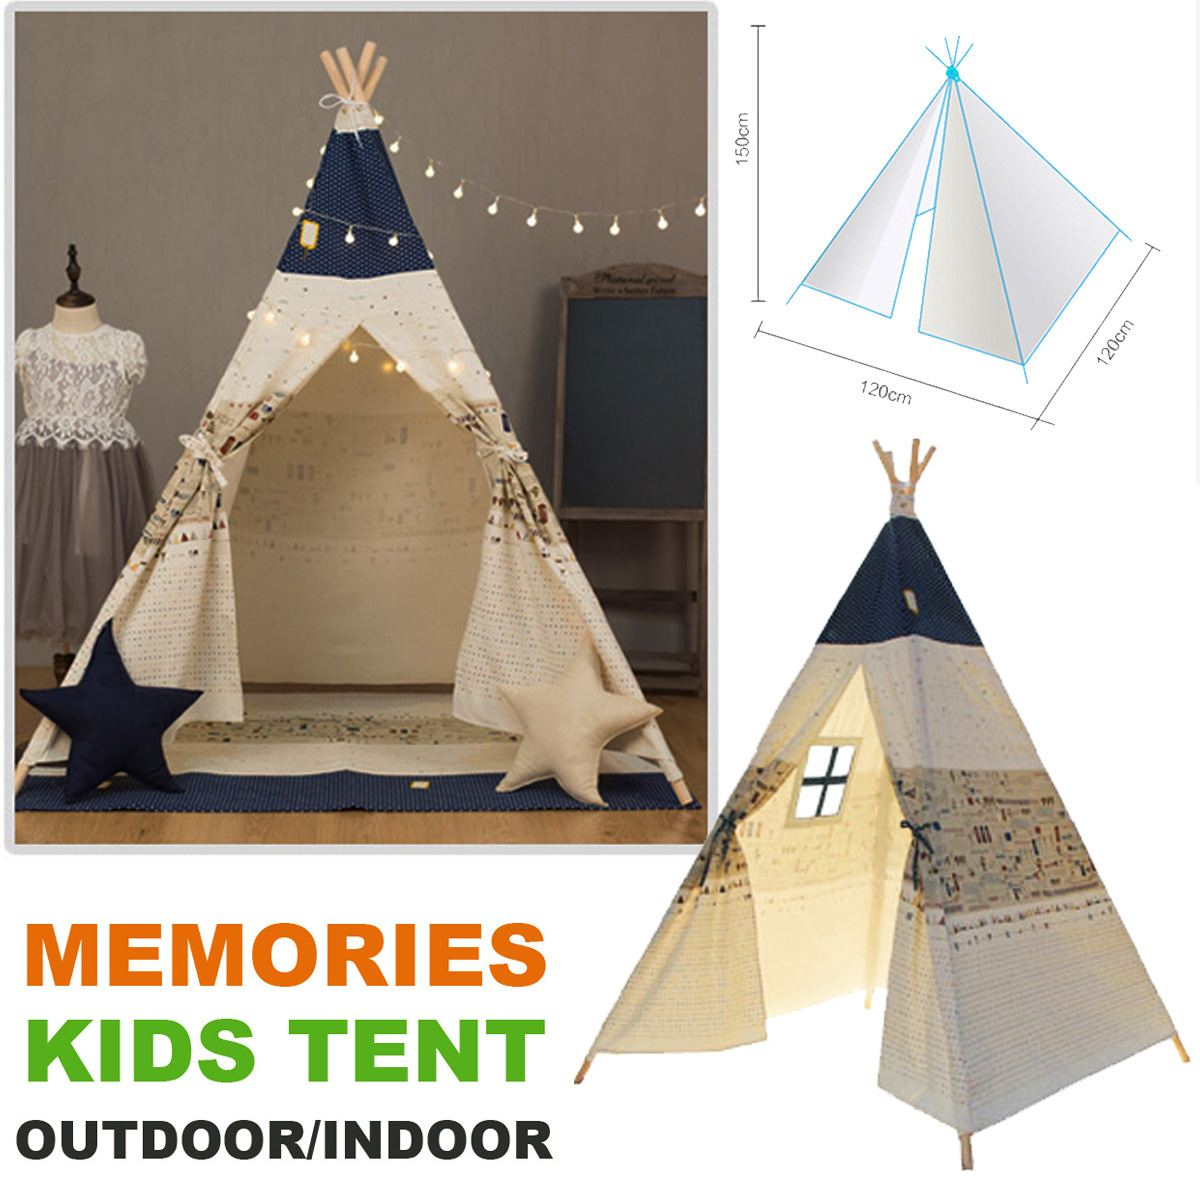 SGODDE Pet Tents Outdoor Wigwan Large Kids Play Tent Teepee Tipi Portable Folding Camping Outdoor Indoor Outdoor Puppies HouseSGODDE Pet Tents Outdoor Wigwan Large Kids Play Tent Teepee Tipi Portable Folding Camping Outdoor Indoor Outdoor Puppies House